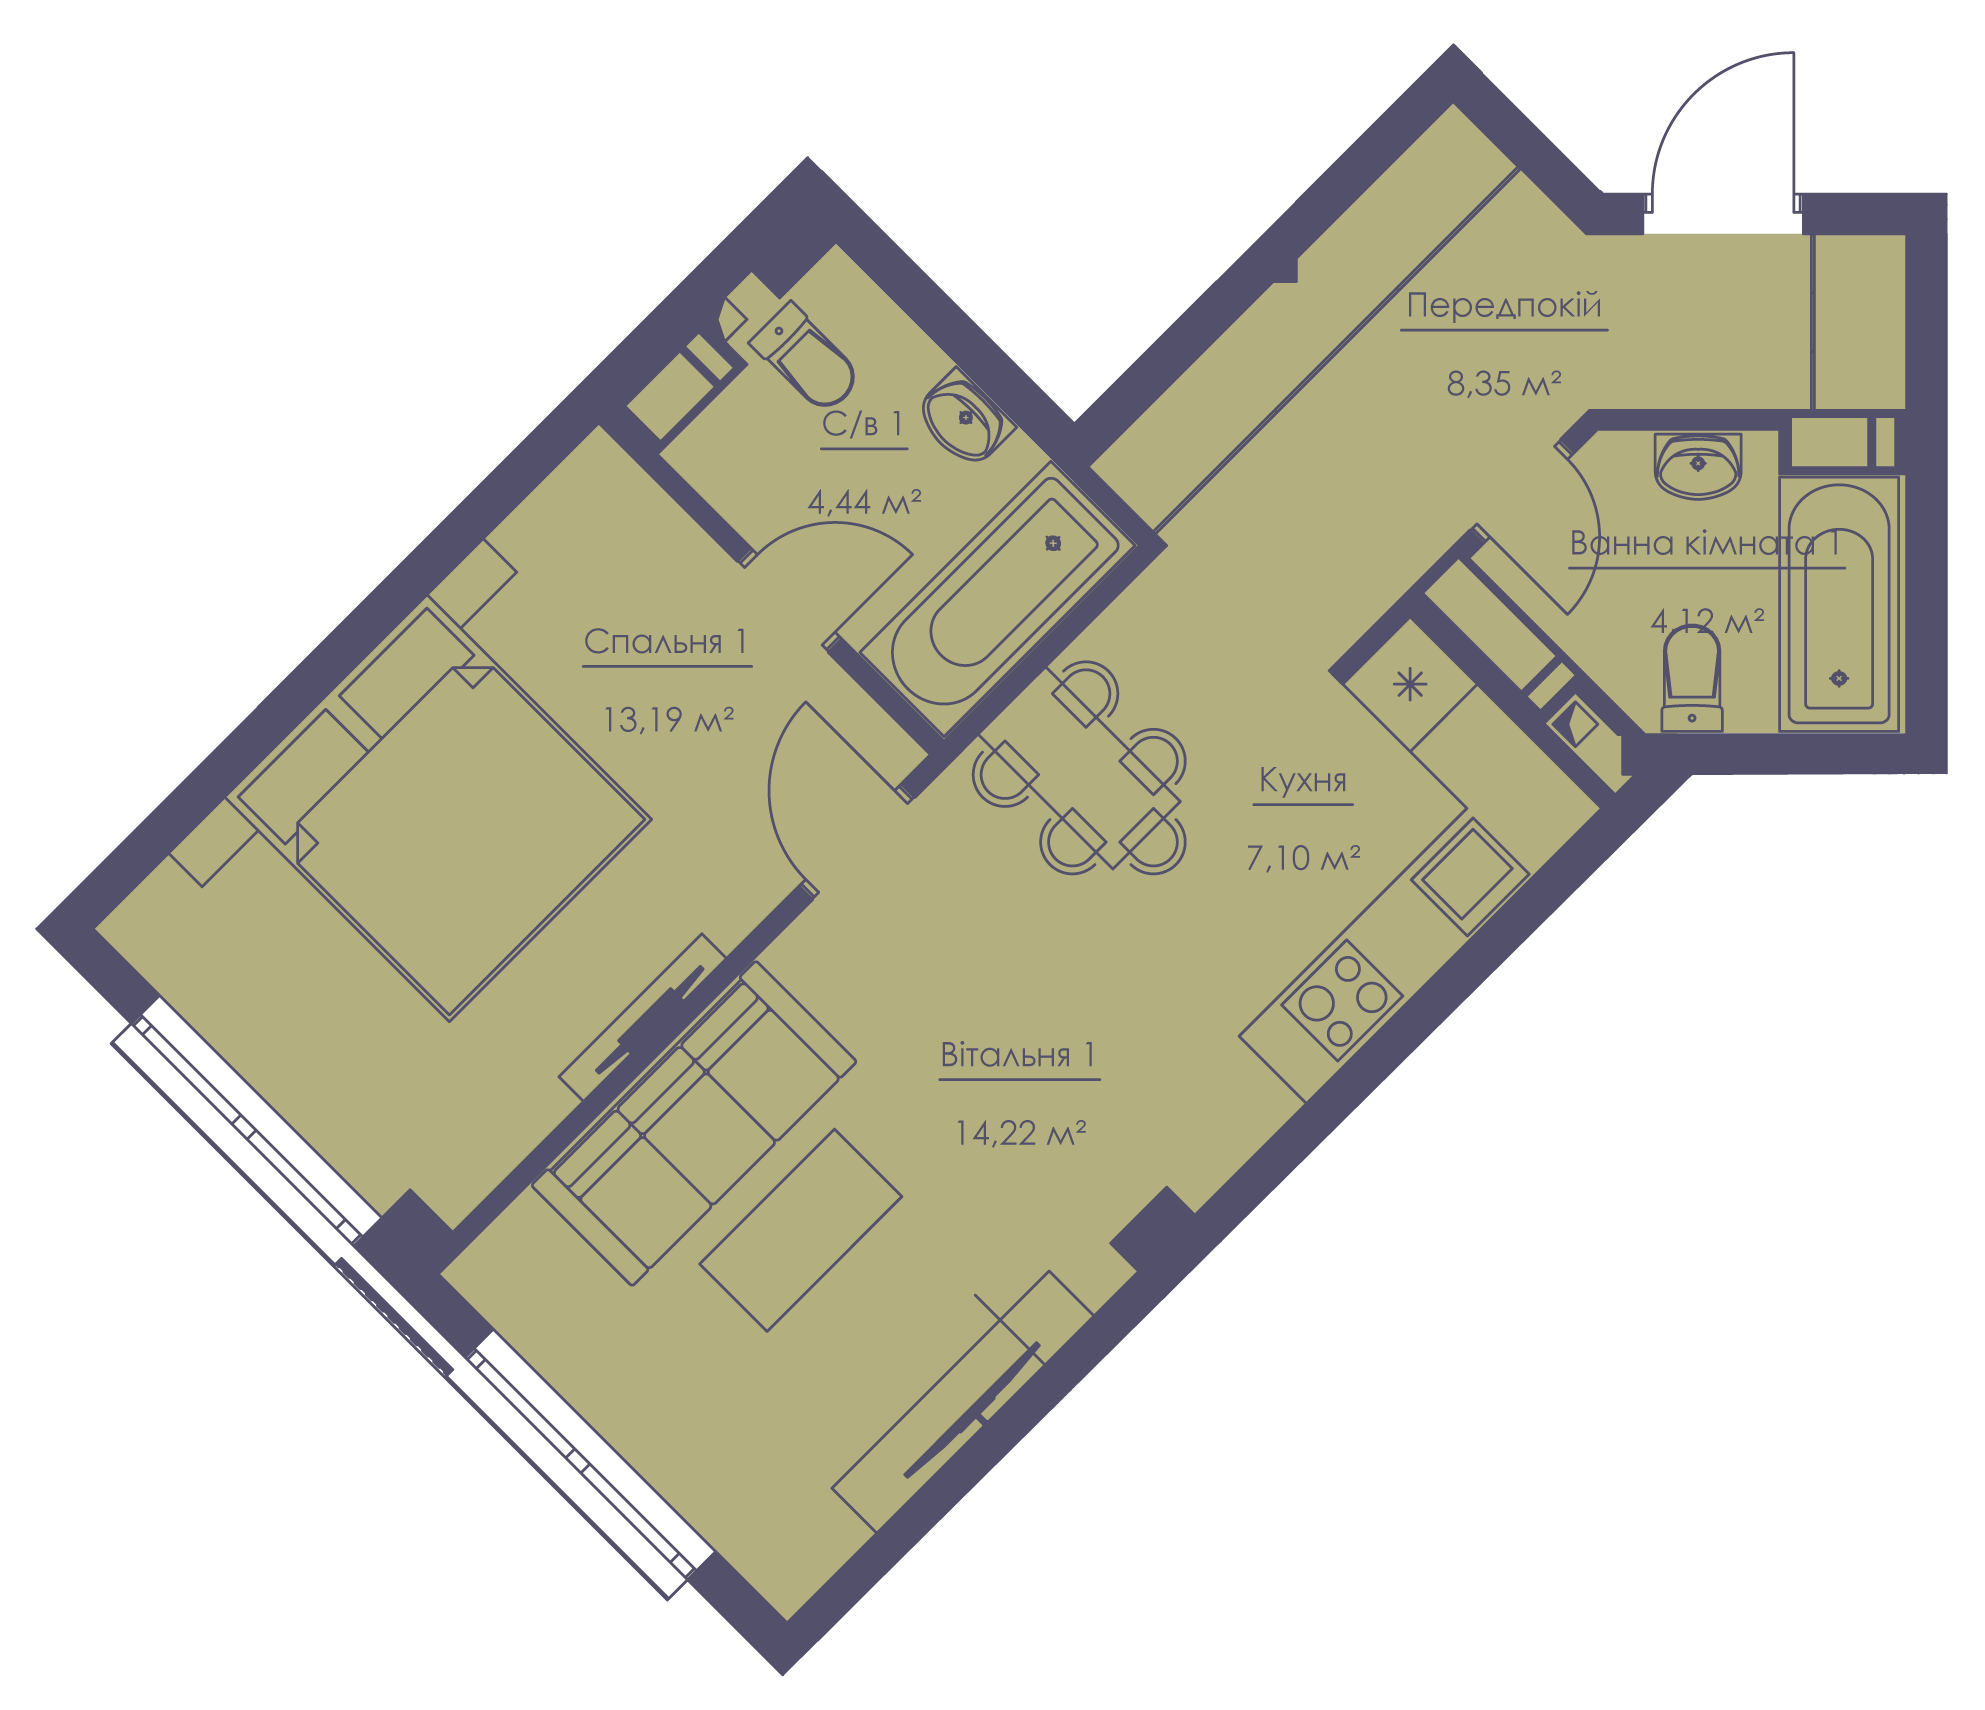 Apartment layout KV_126_3.2m_1_1_3-1